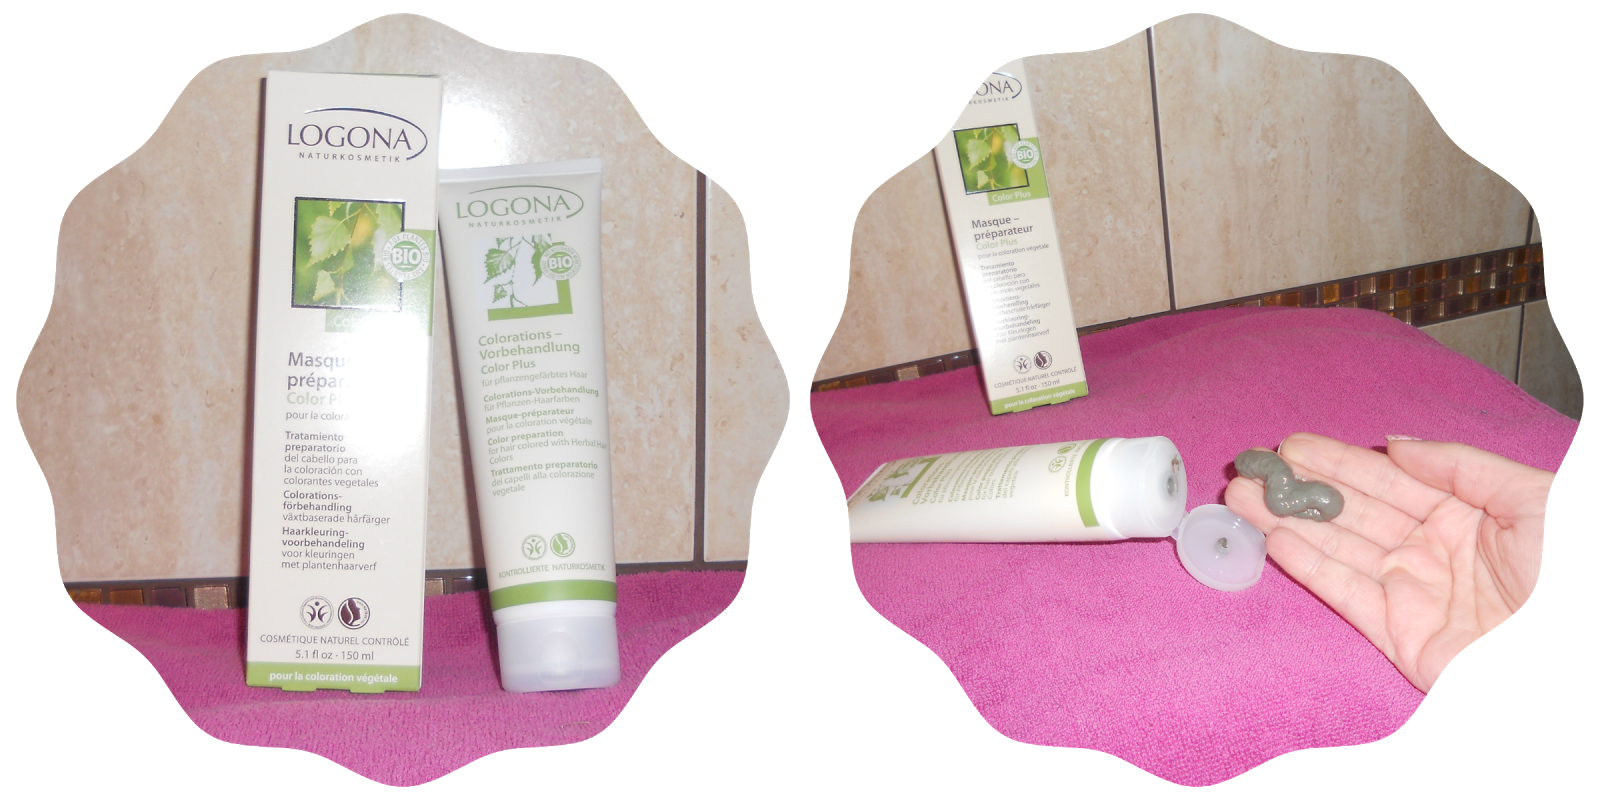 MASQUE PREPARATEUR LOGONA